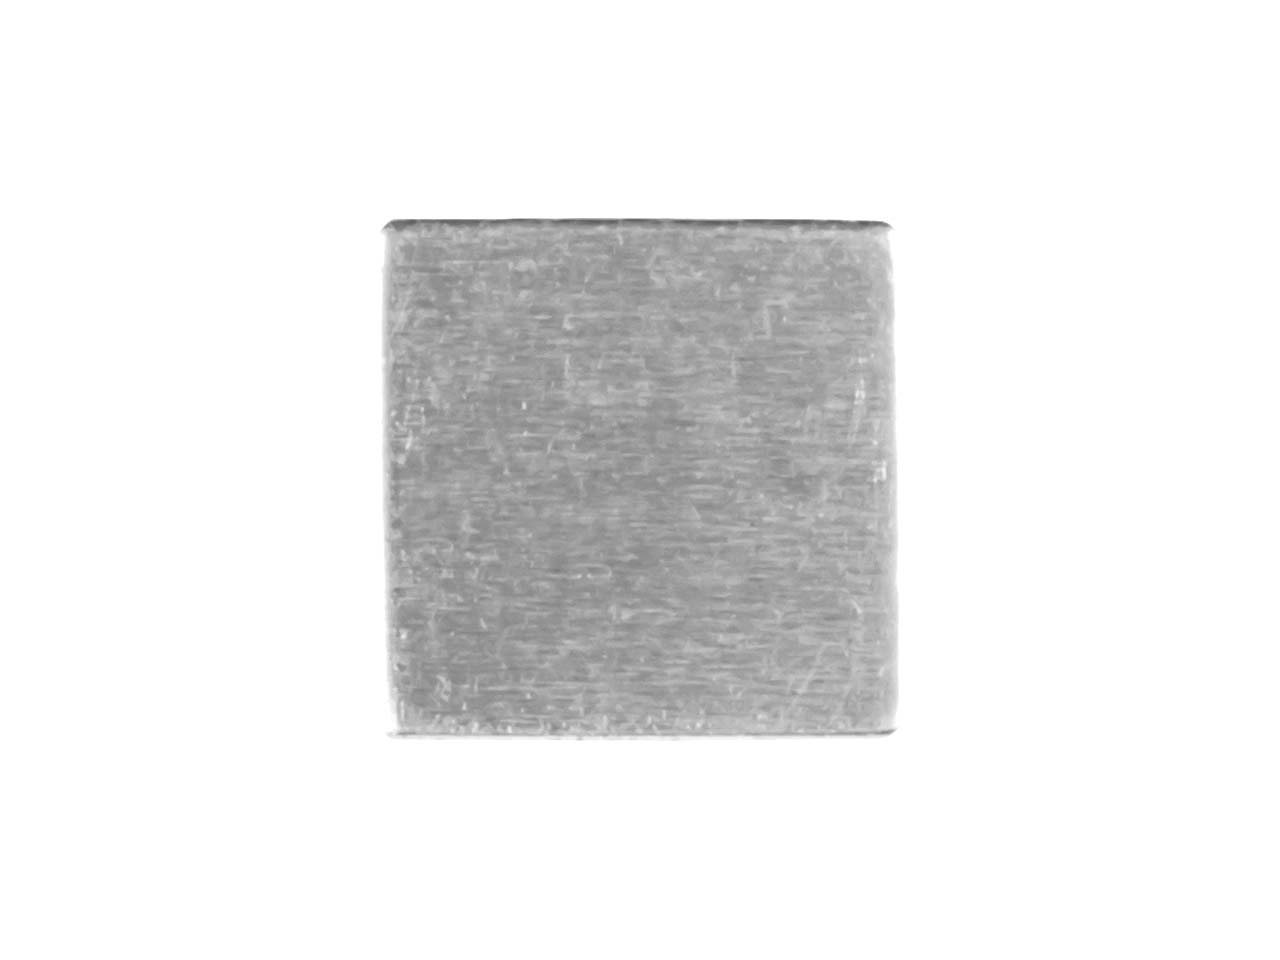 Impressart Aluminium Blanks Square 12.7mm X 0.8mm, Pack of 20